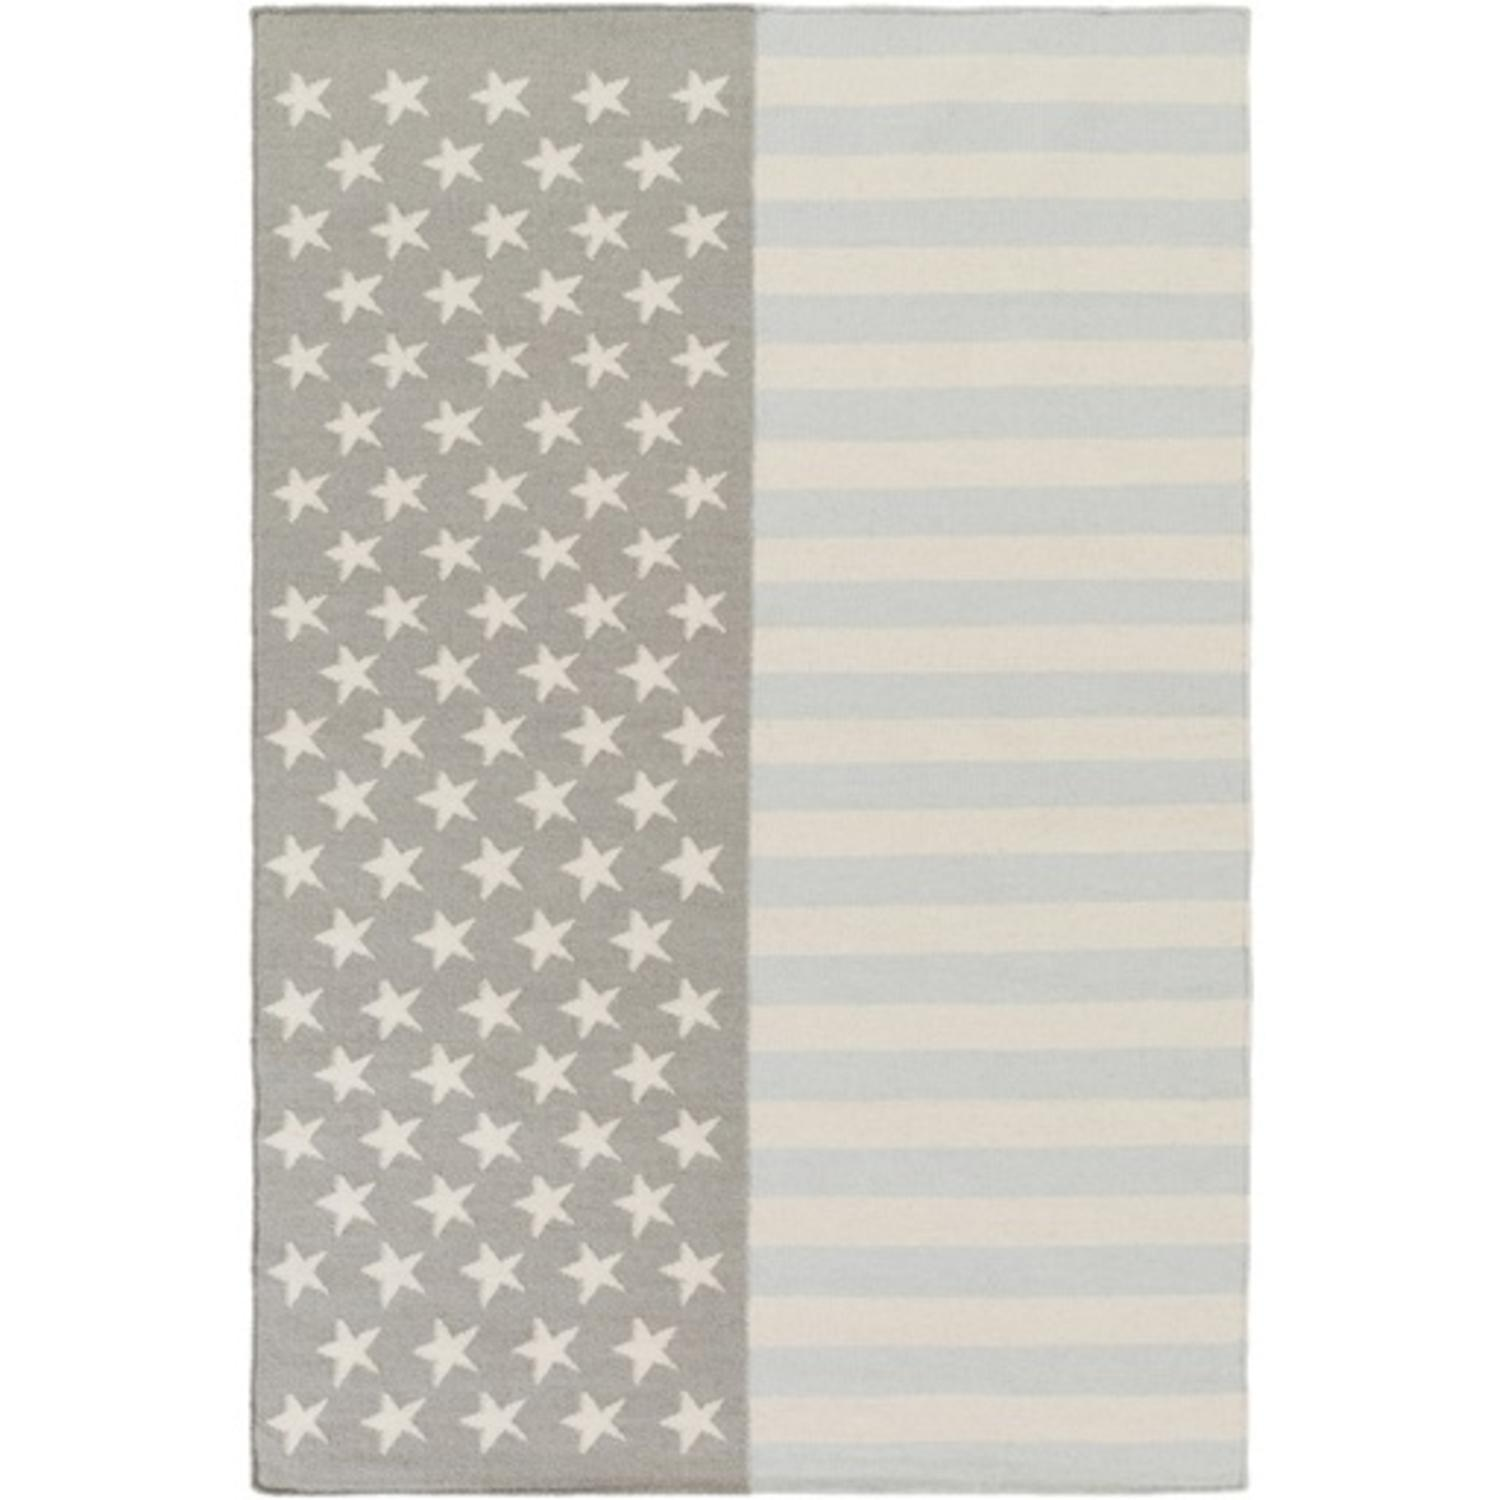 2' x 3' Home of the Brave Cool Gray, Light Blue and Taupe Wool Area Throw Rug